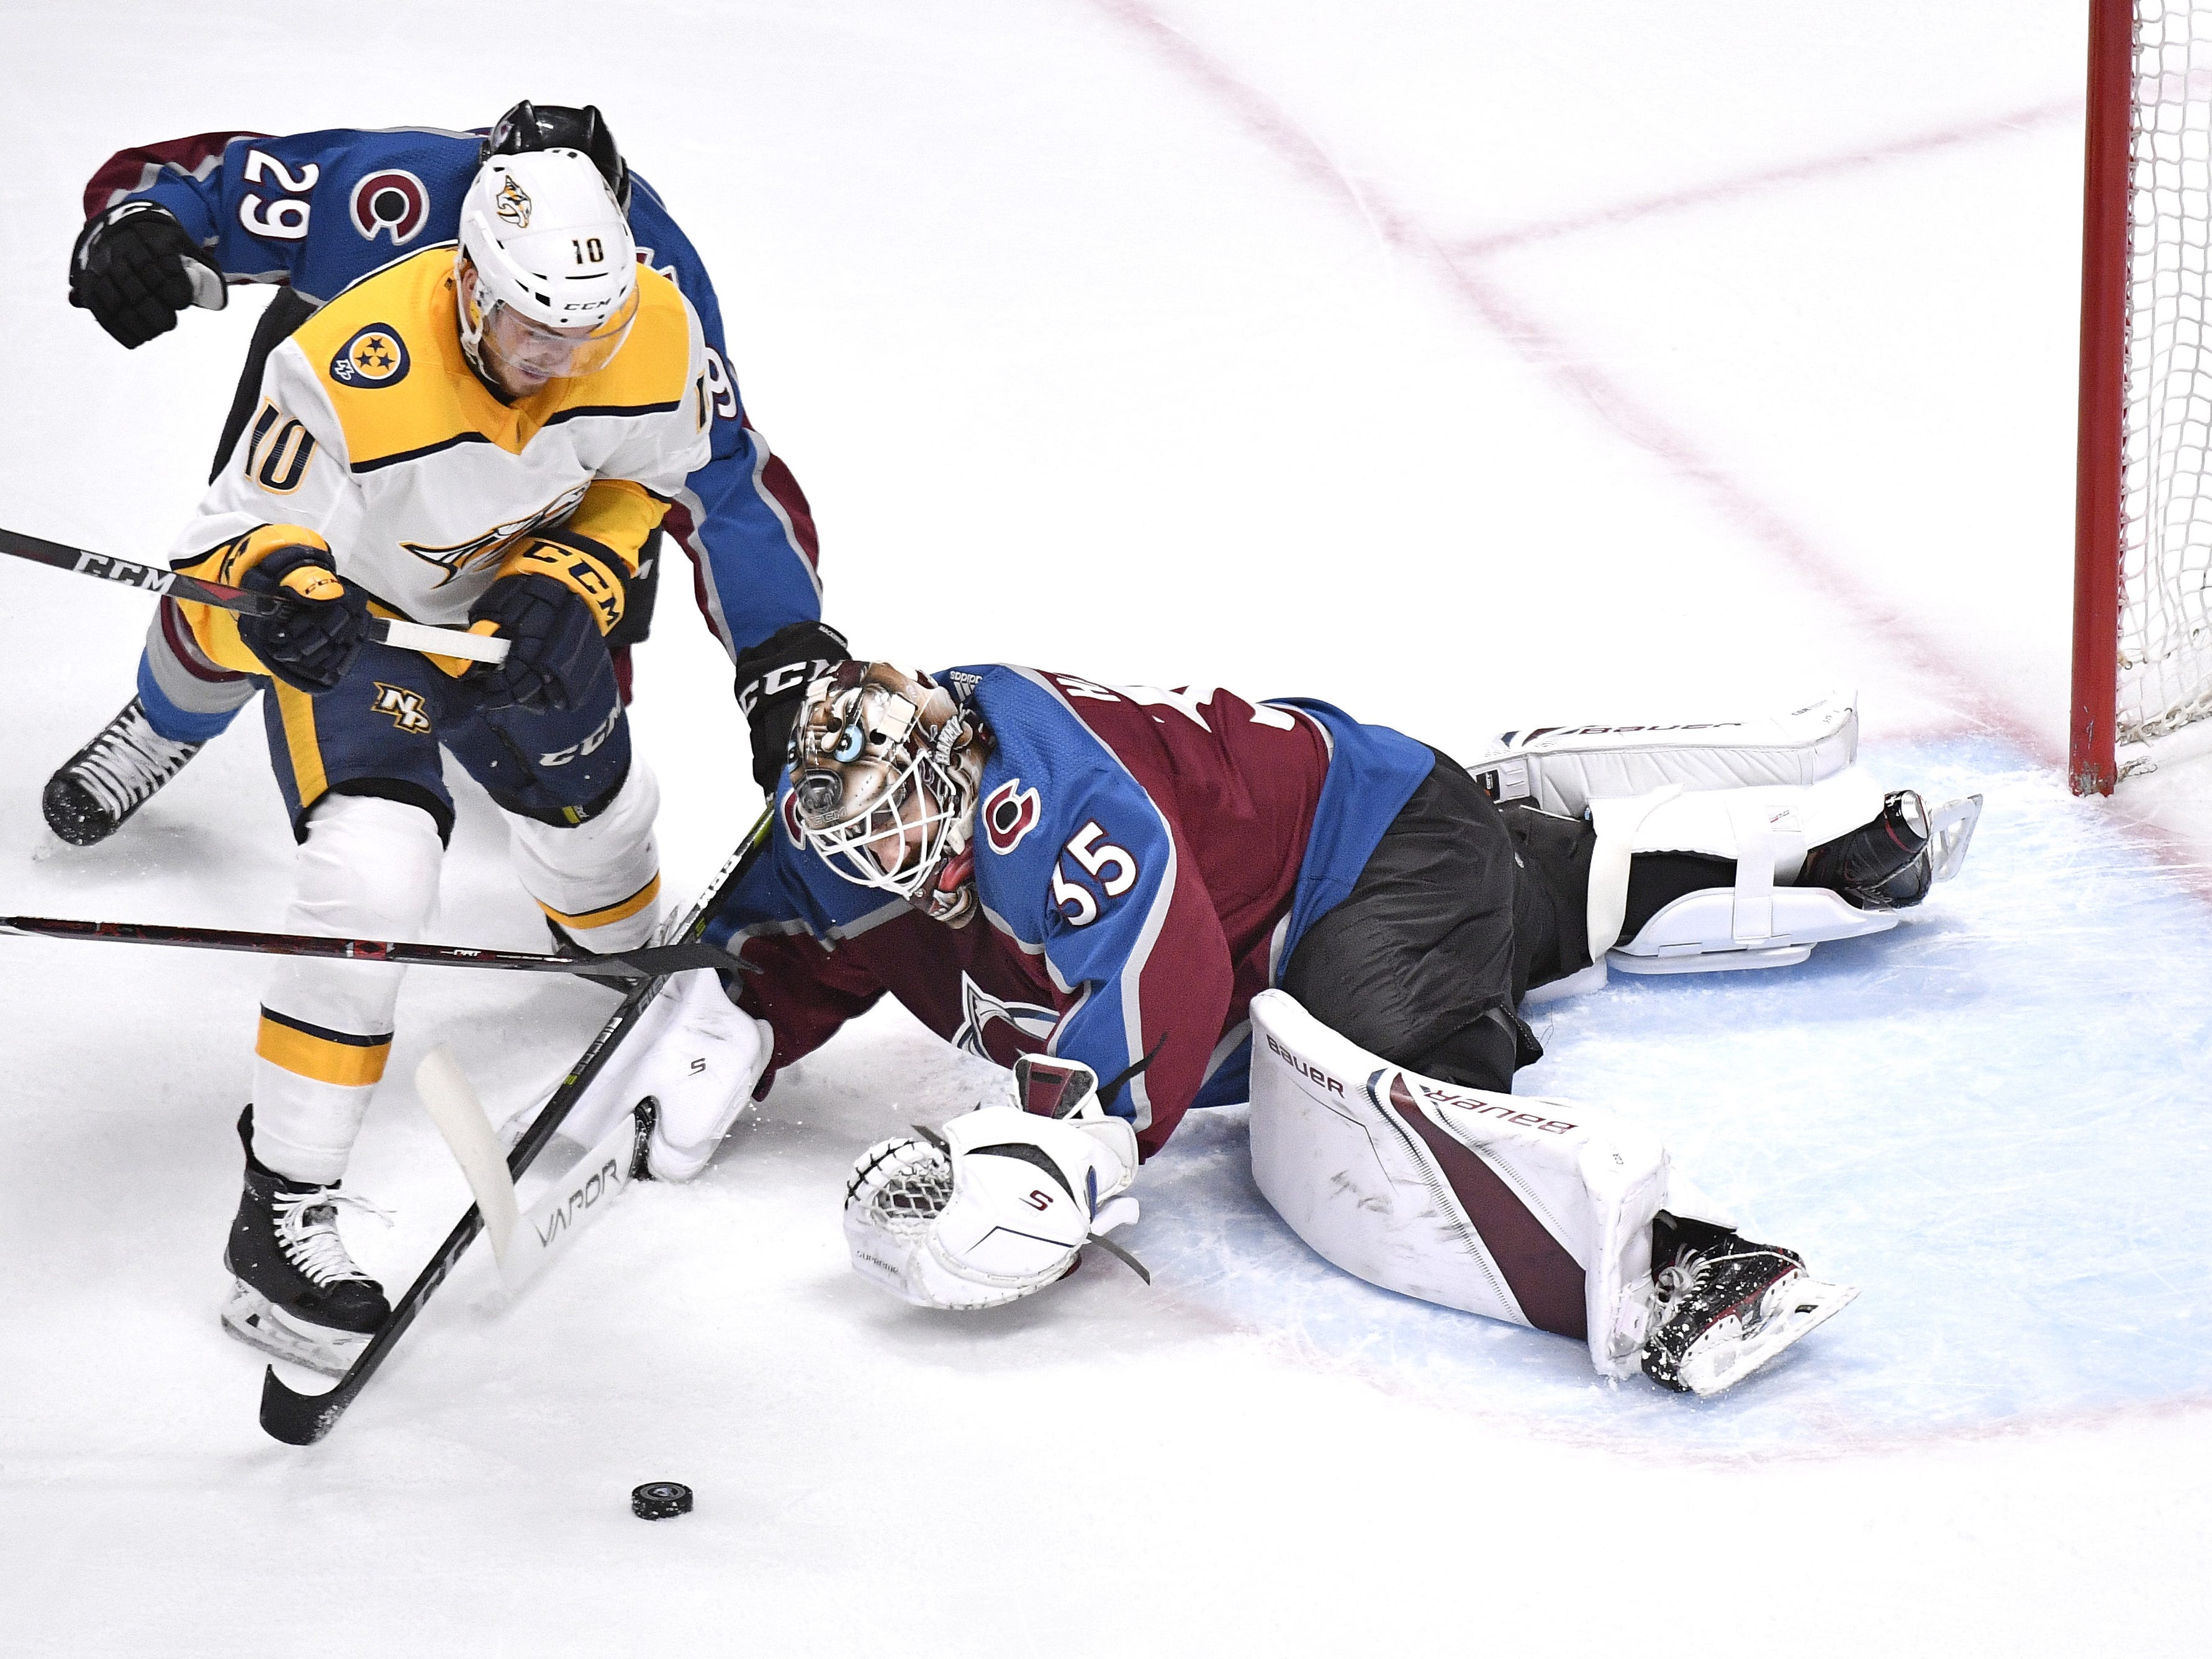 #10, Colton Sissons, Forward - Nashville Predators center Colton Sissons (10) gets past Colorado Avalanche goaltender Andrew Hammond (35) with a shot that hits the post during the first period of game 6 in the first round NHL Stanley Cup Playoffs at Pepsi Center, Sunday, April 22, 2018, in Denver, Colo.